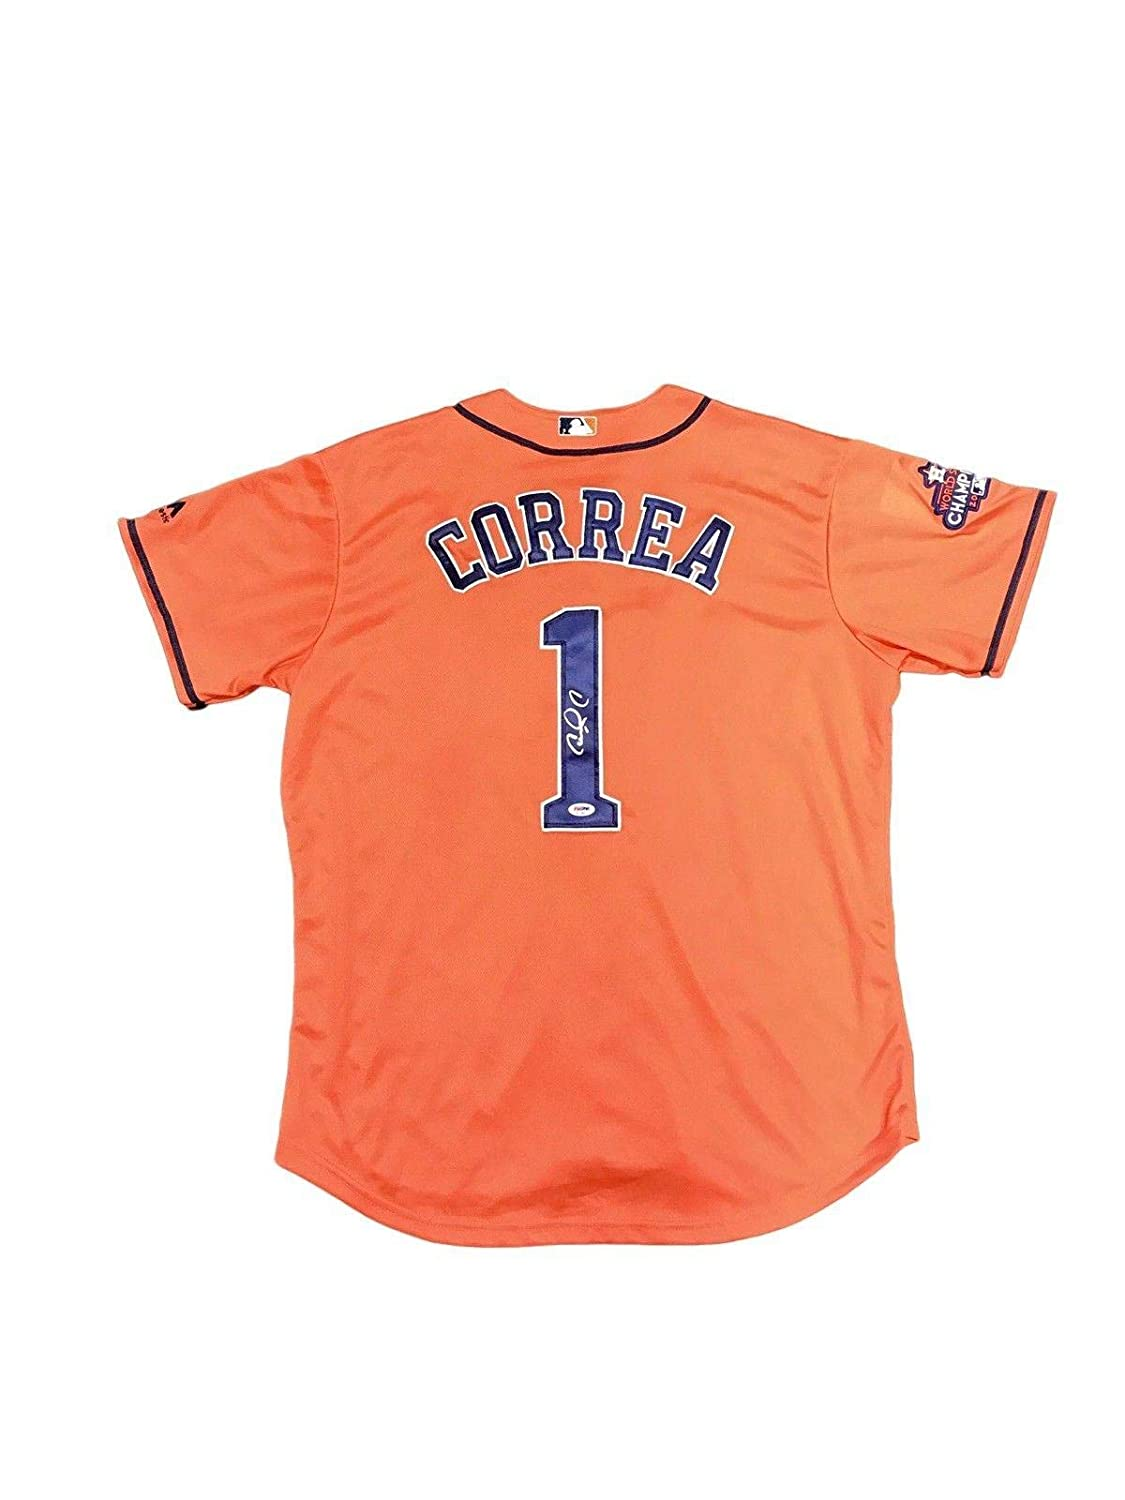 detailed look 34311 cc18d Autographed Carlos Correa Jersey - Away Orange - PSA/DNA ...